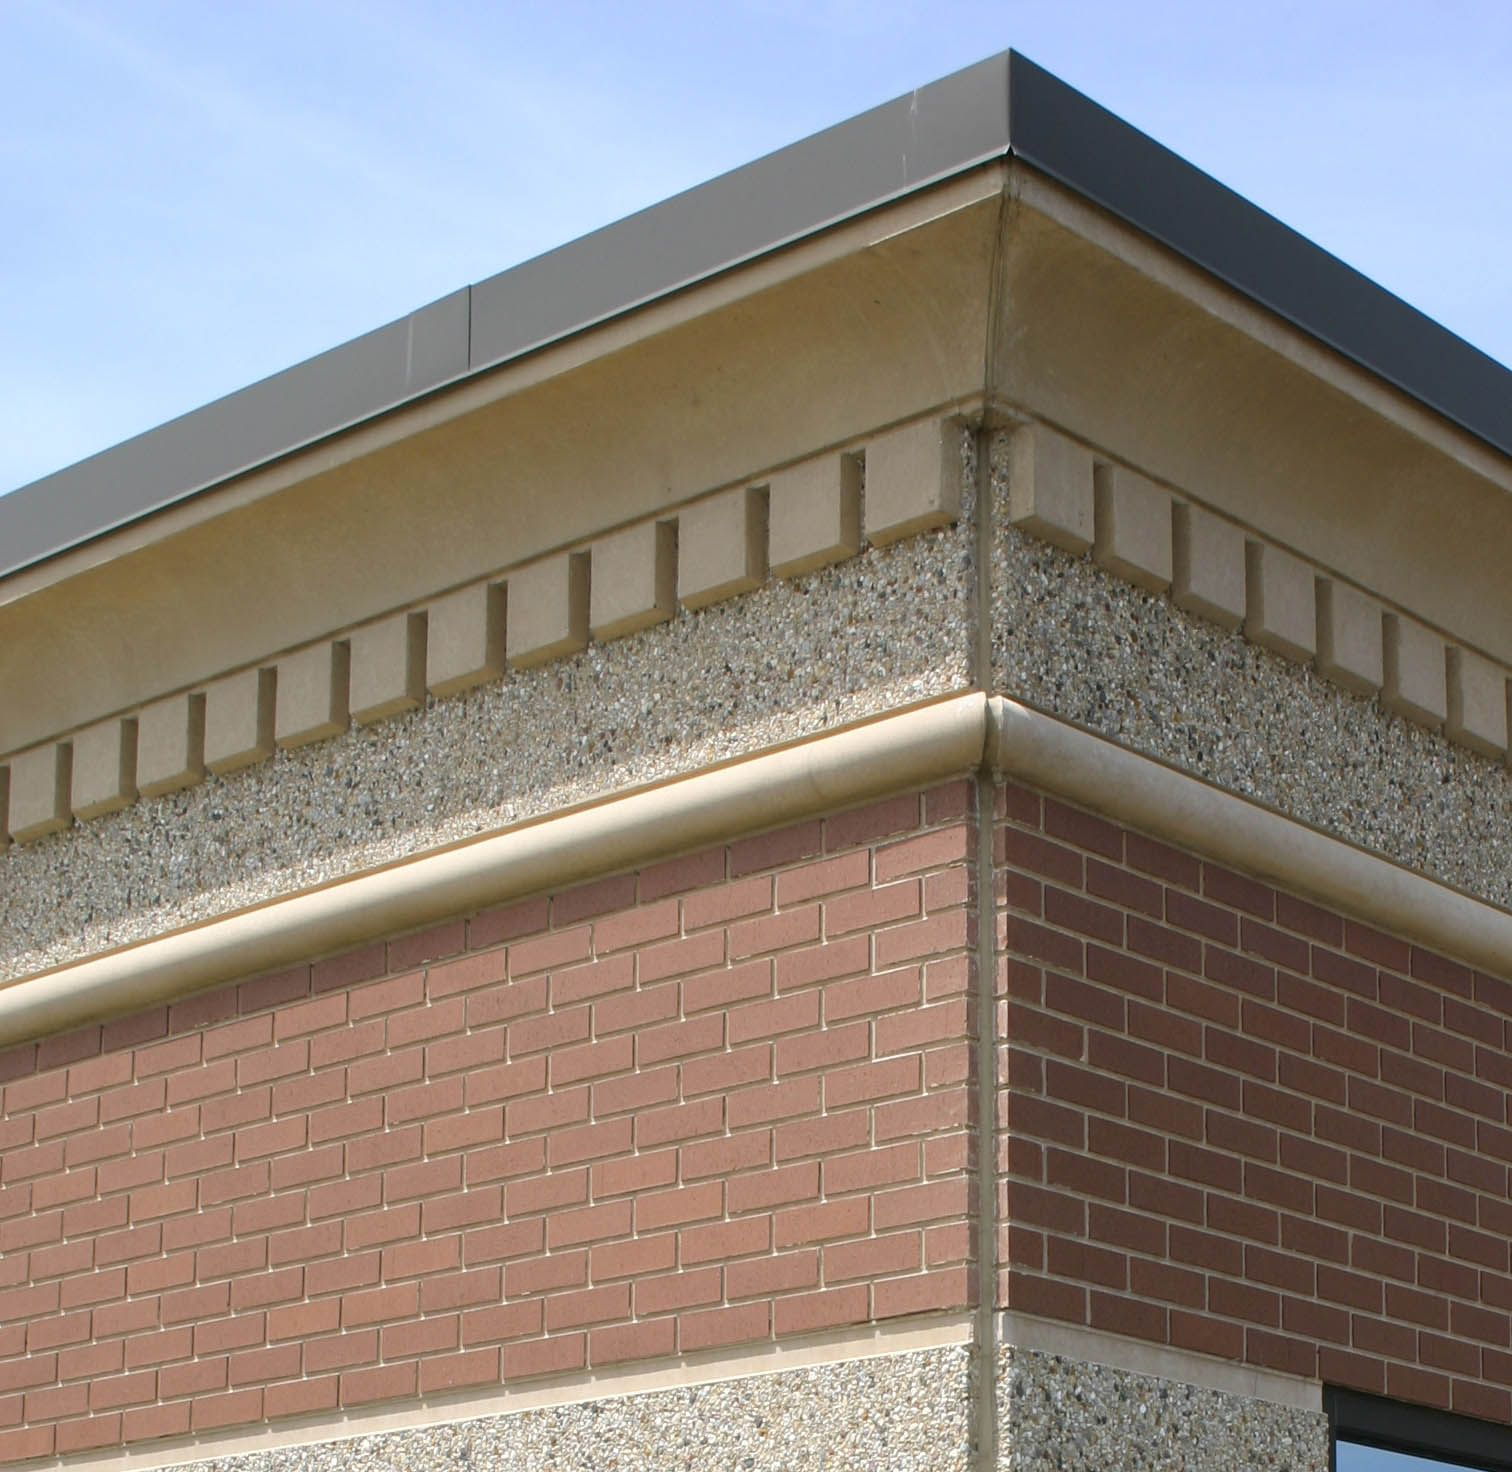 1000+ images about architectural precast - features & finishes on